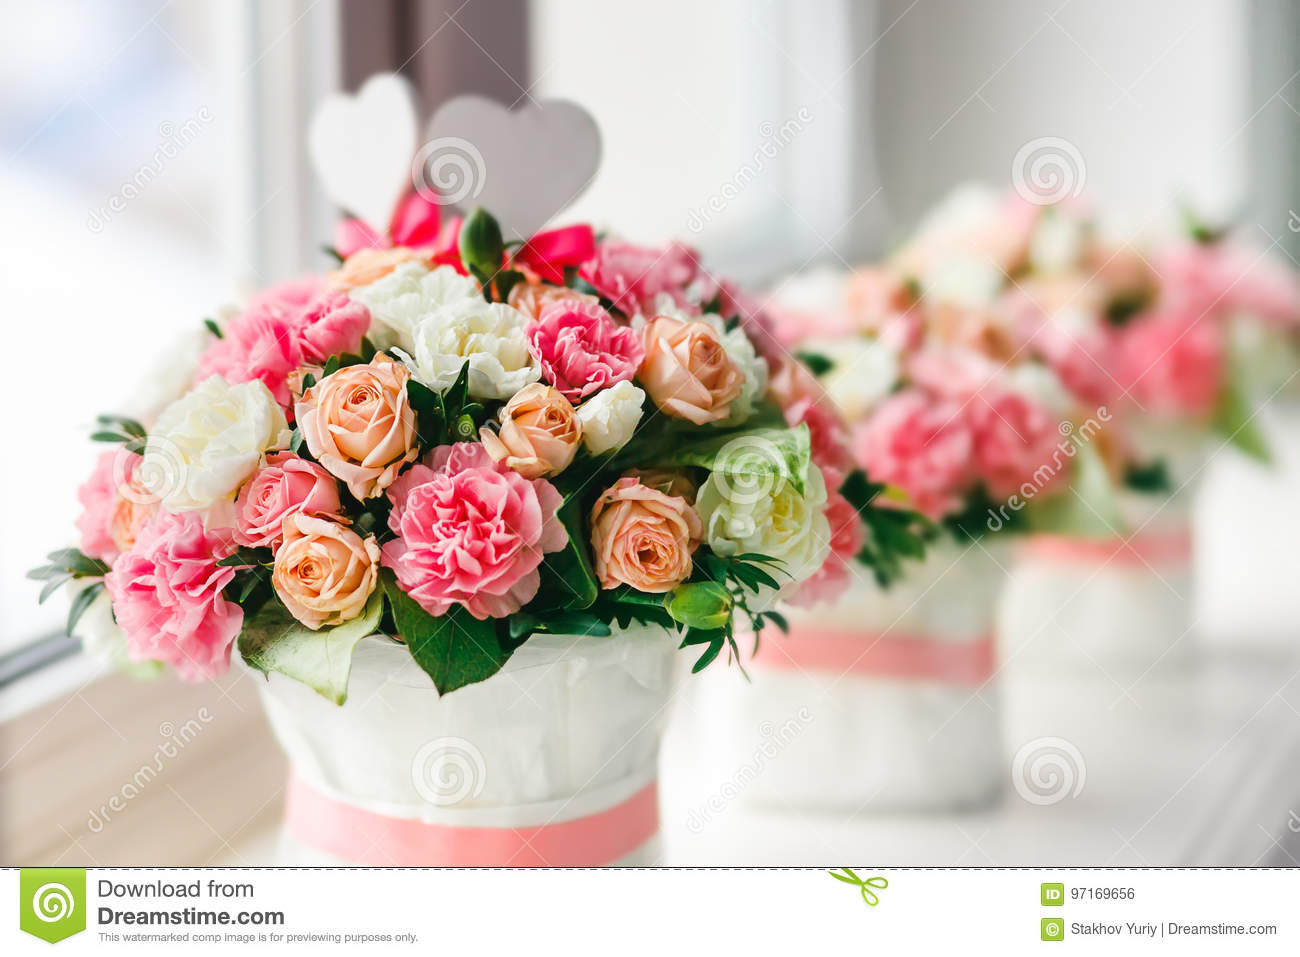 Flower Arrangement Of White Pink And Peach Roses At The Windowsill